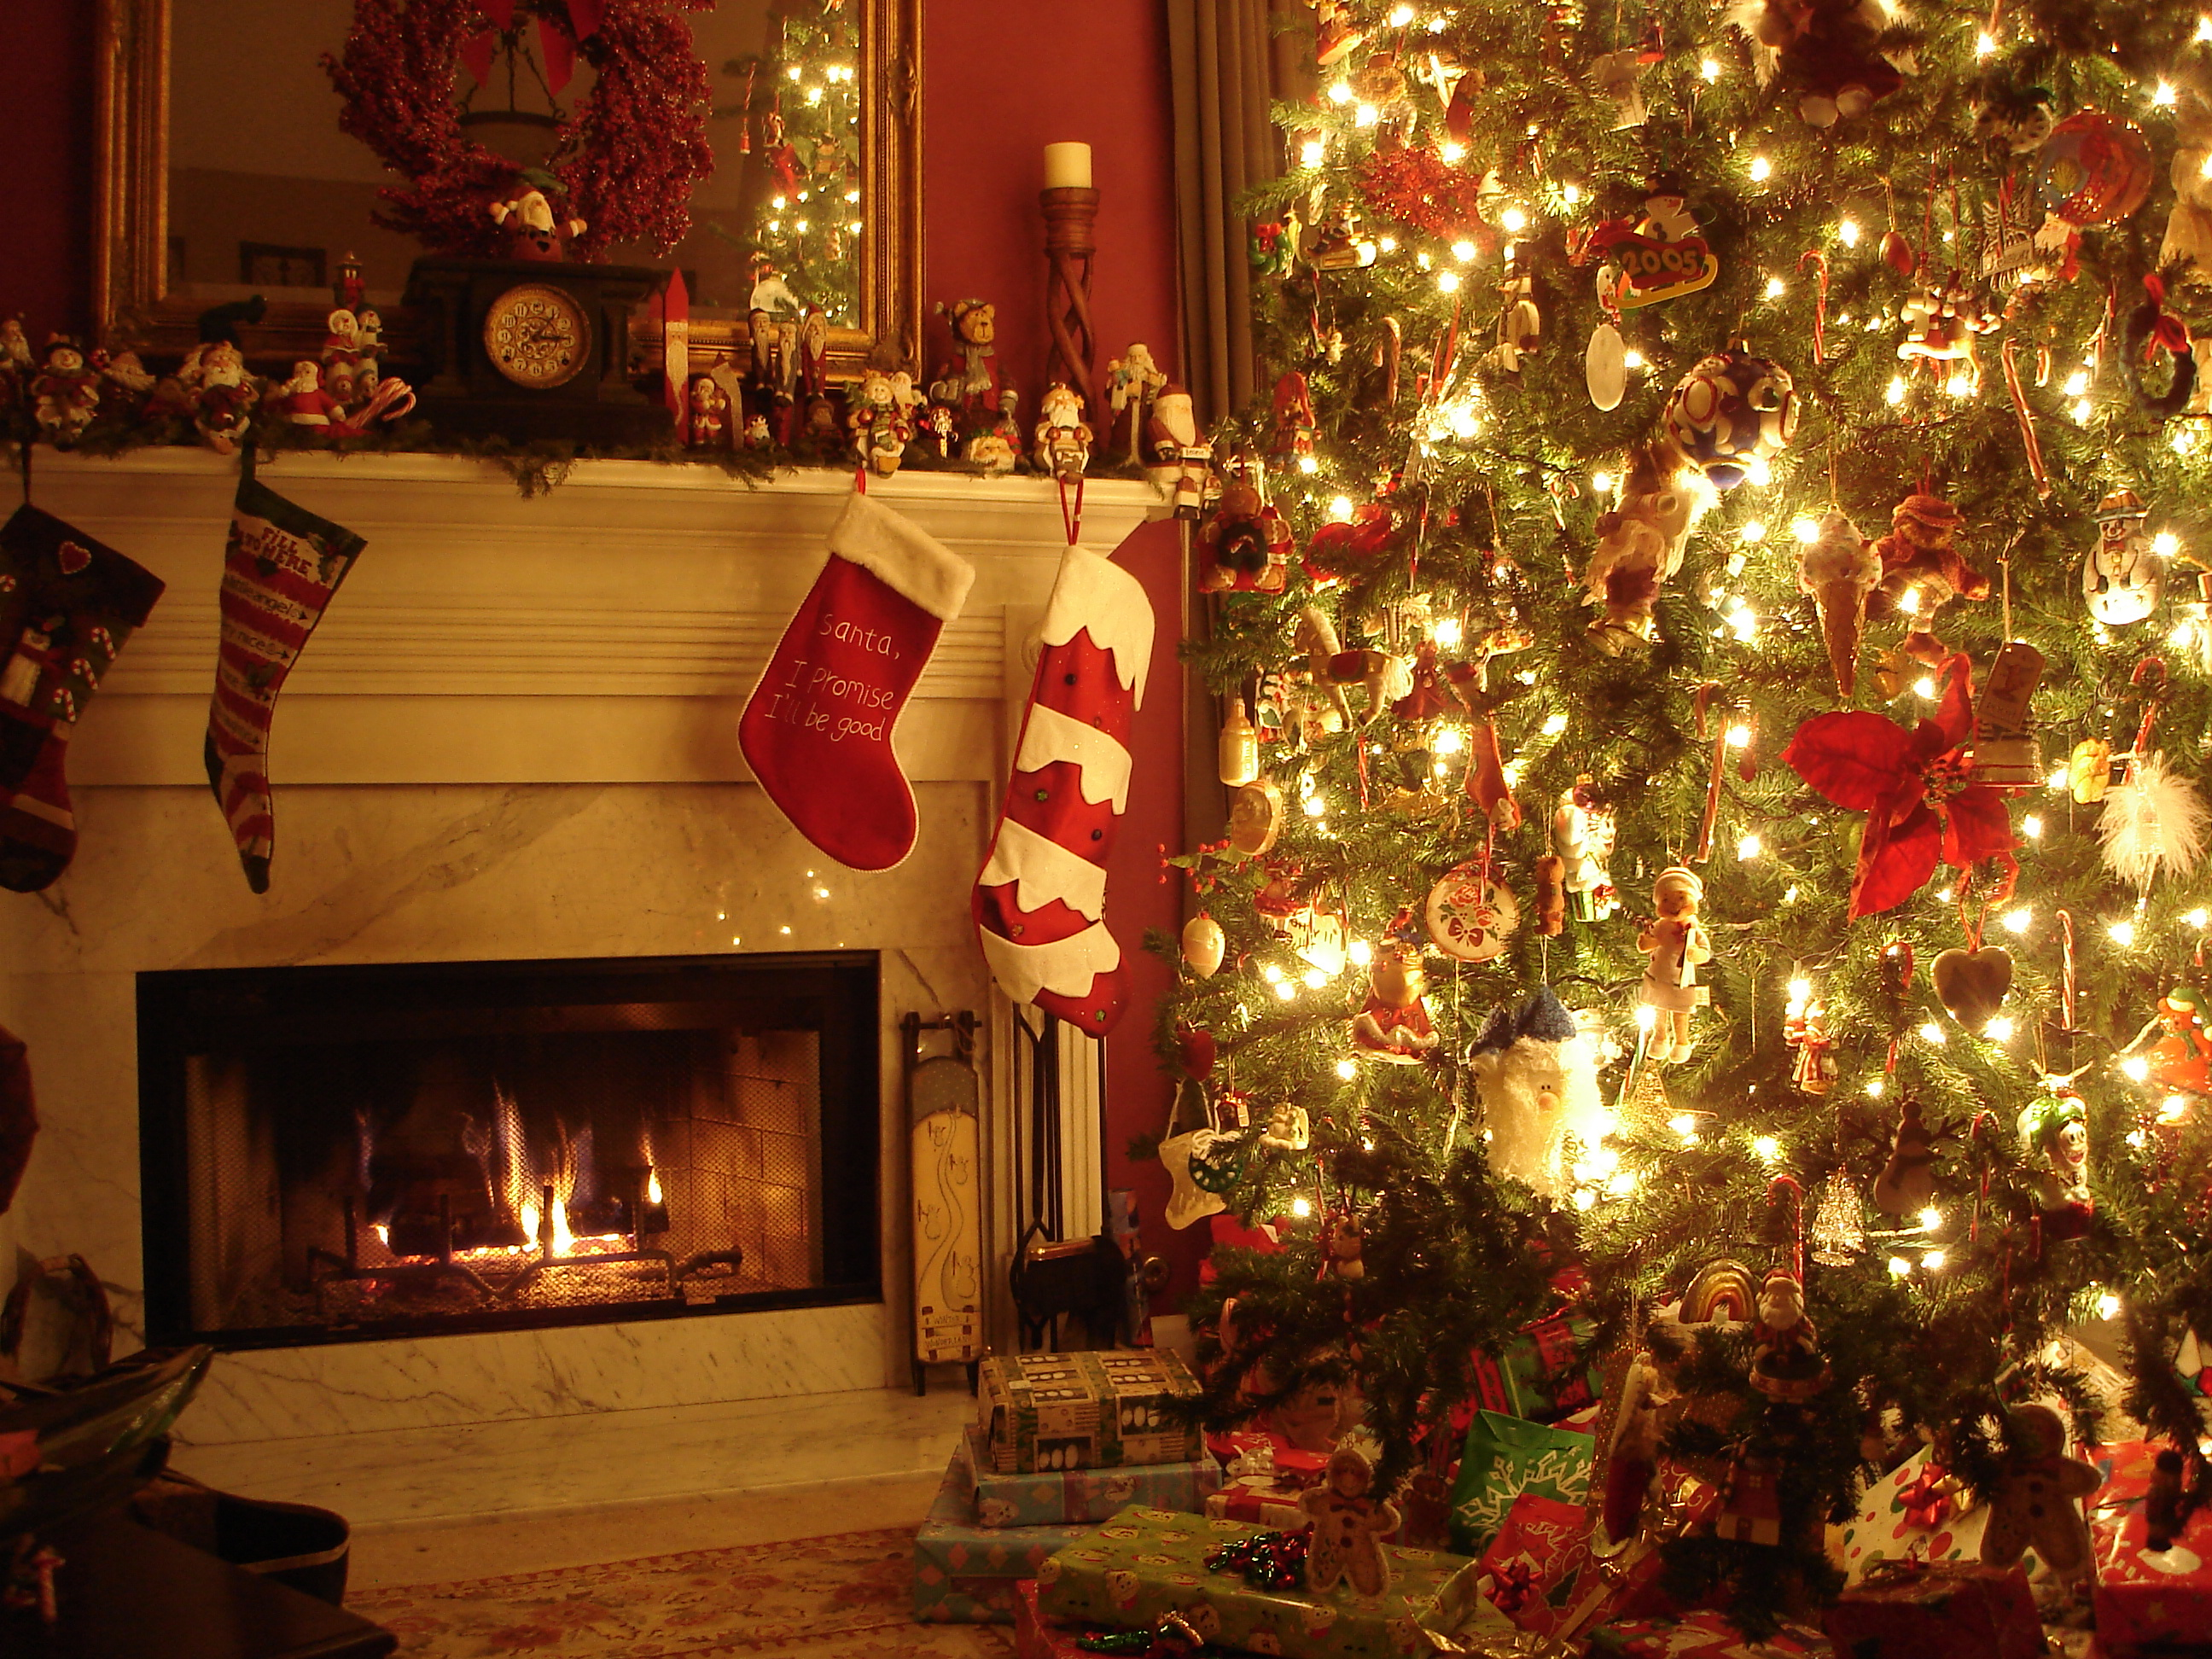 Cozy Christmas in front of a fire